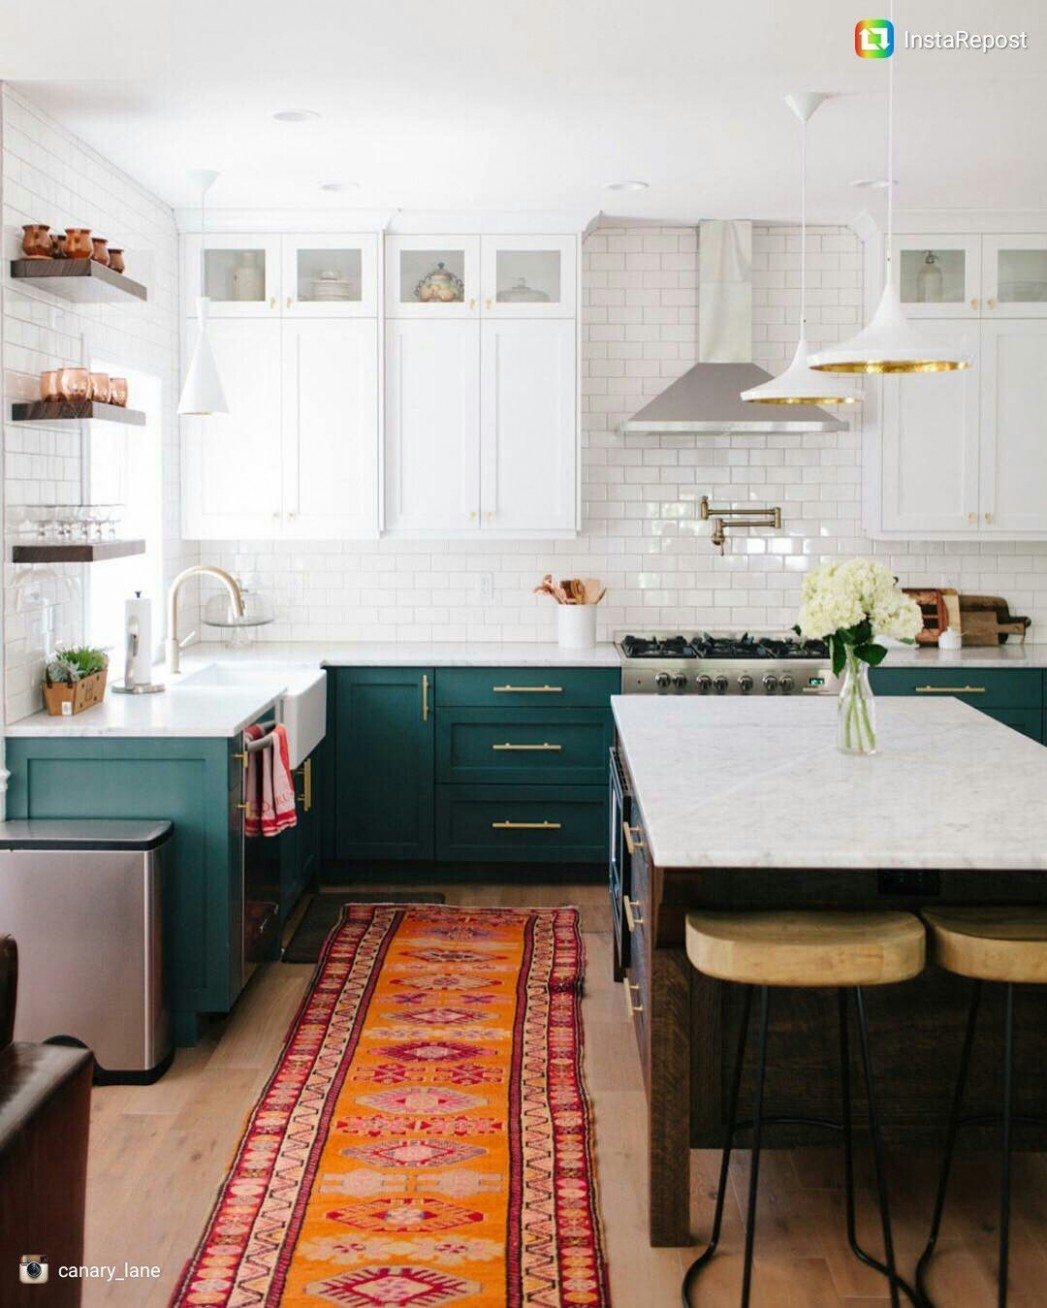 White upper cabinets, dark teal lower cabinets, small cabinets  - Kitchen Designs With White Upper Cabinets And Dark Lower Cabinets